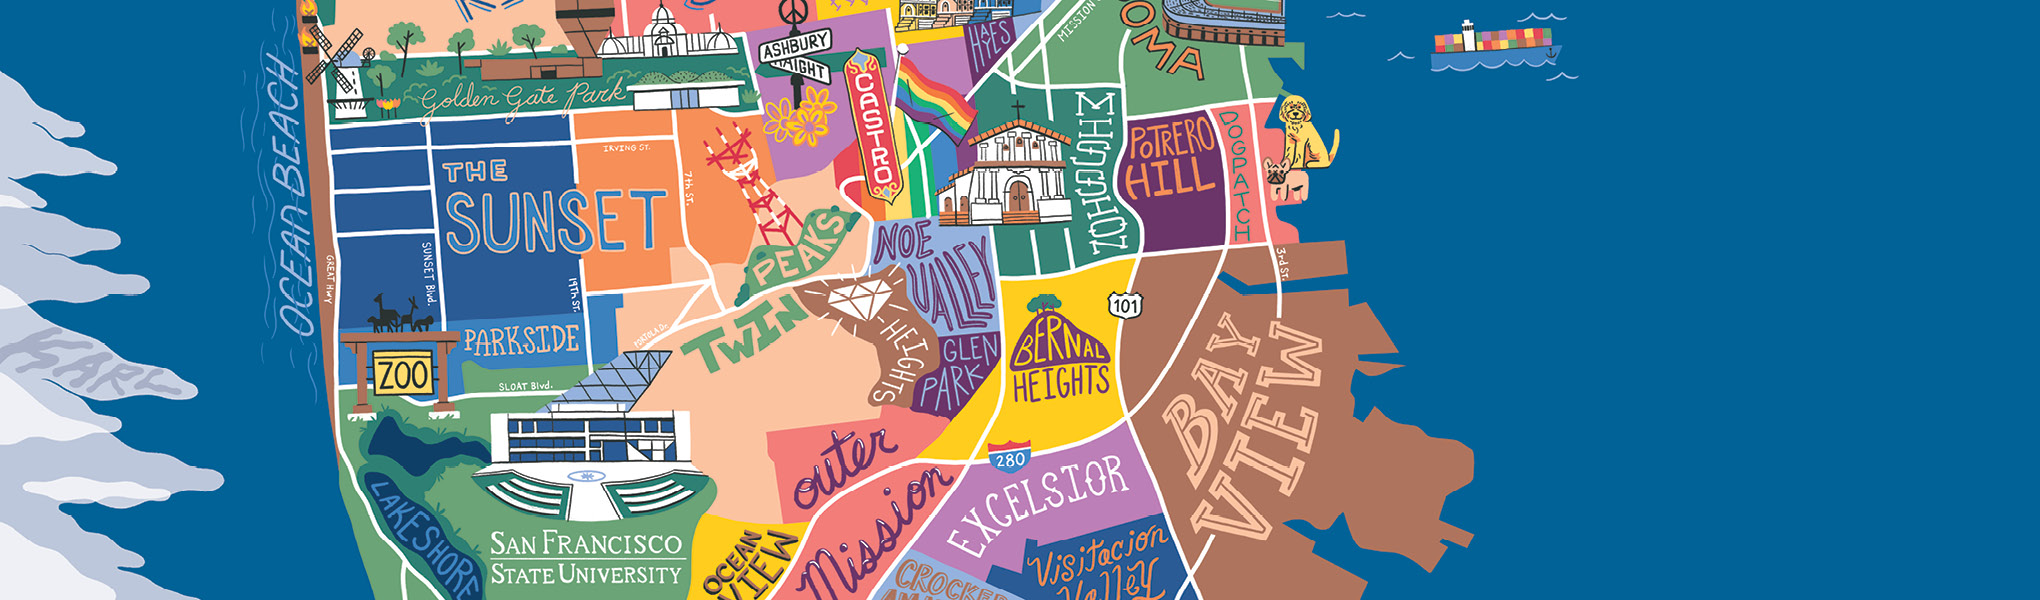 Illustration of San Francisco city map identifying key districts and locations